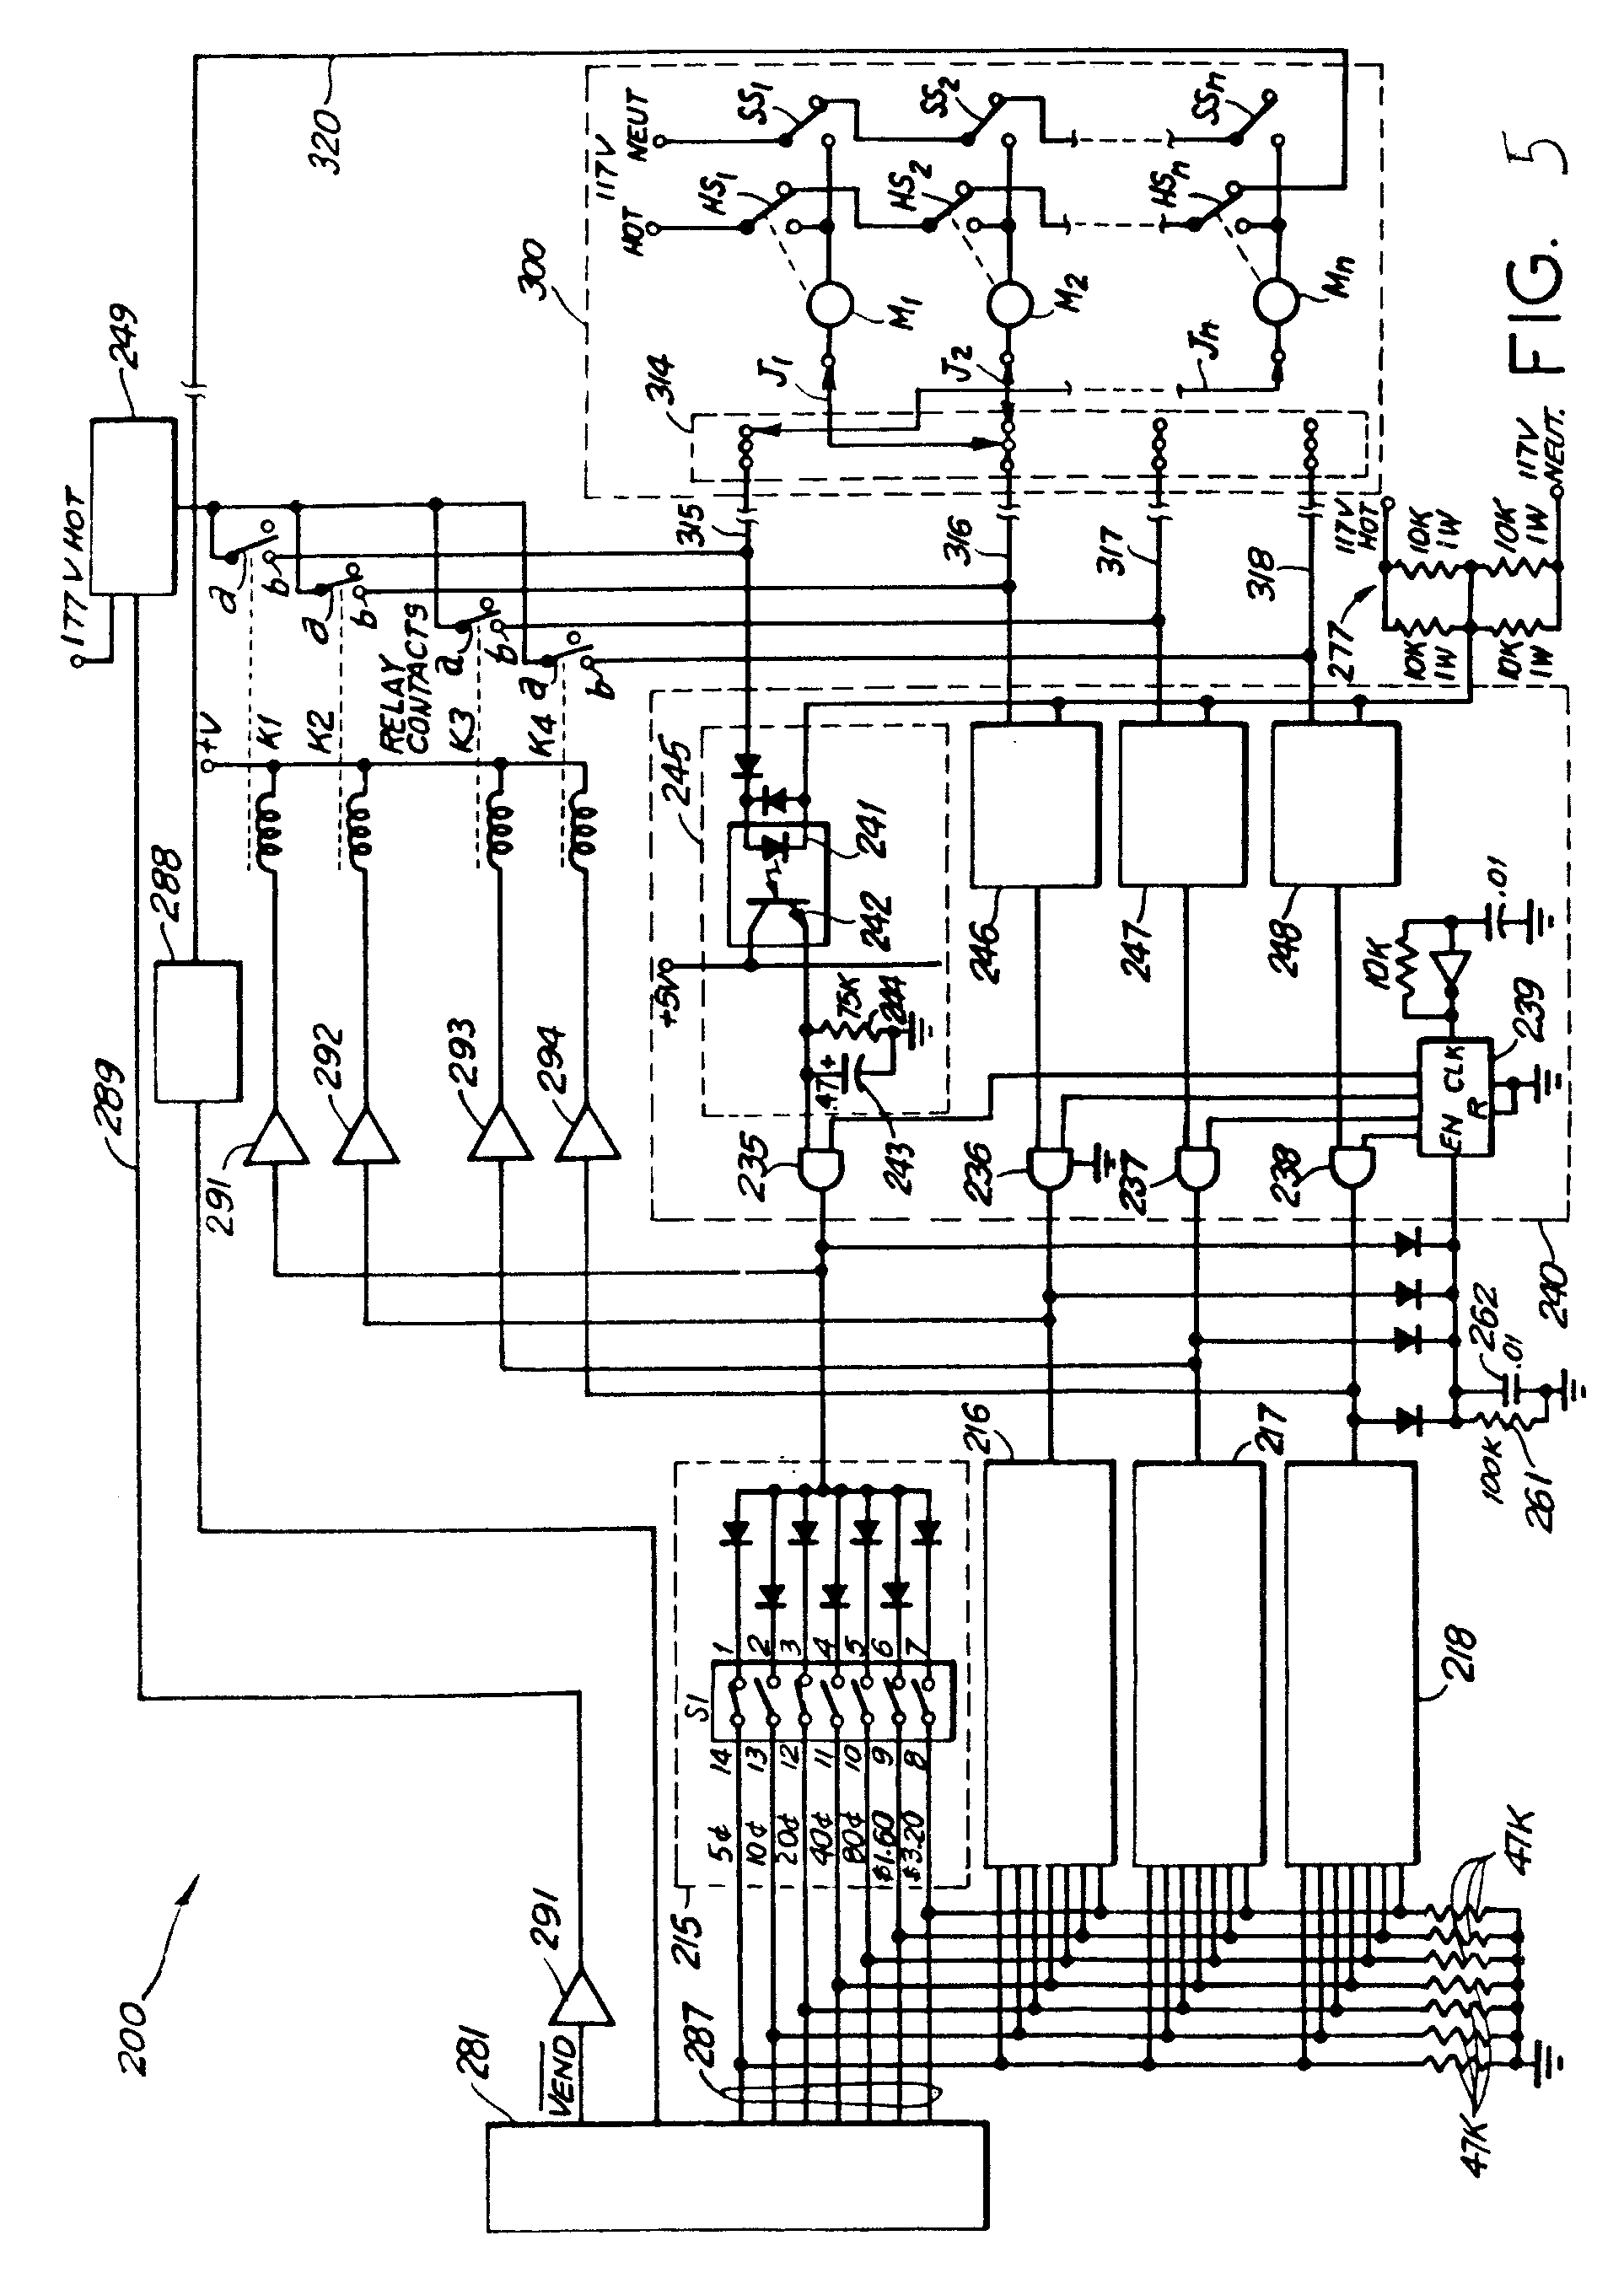 Mars Wiring Diagram Simple Guide About 10586 Patent Ep0178811b1 Vending Machine Power Switching 10589